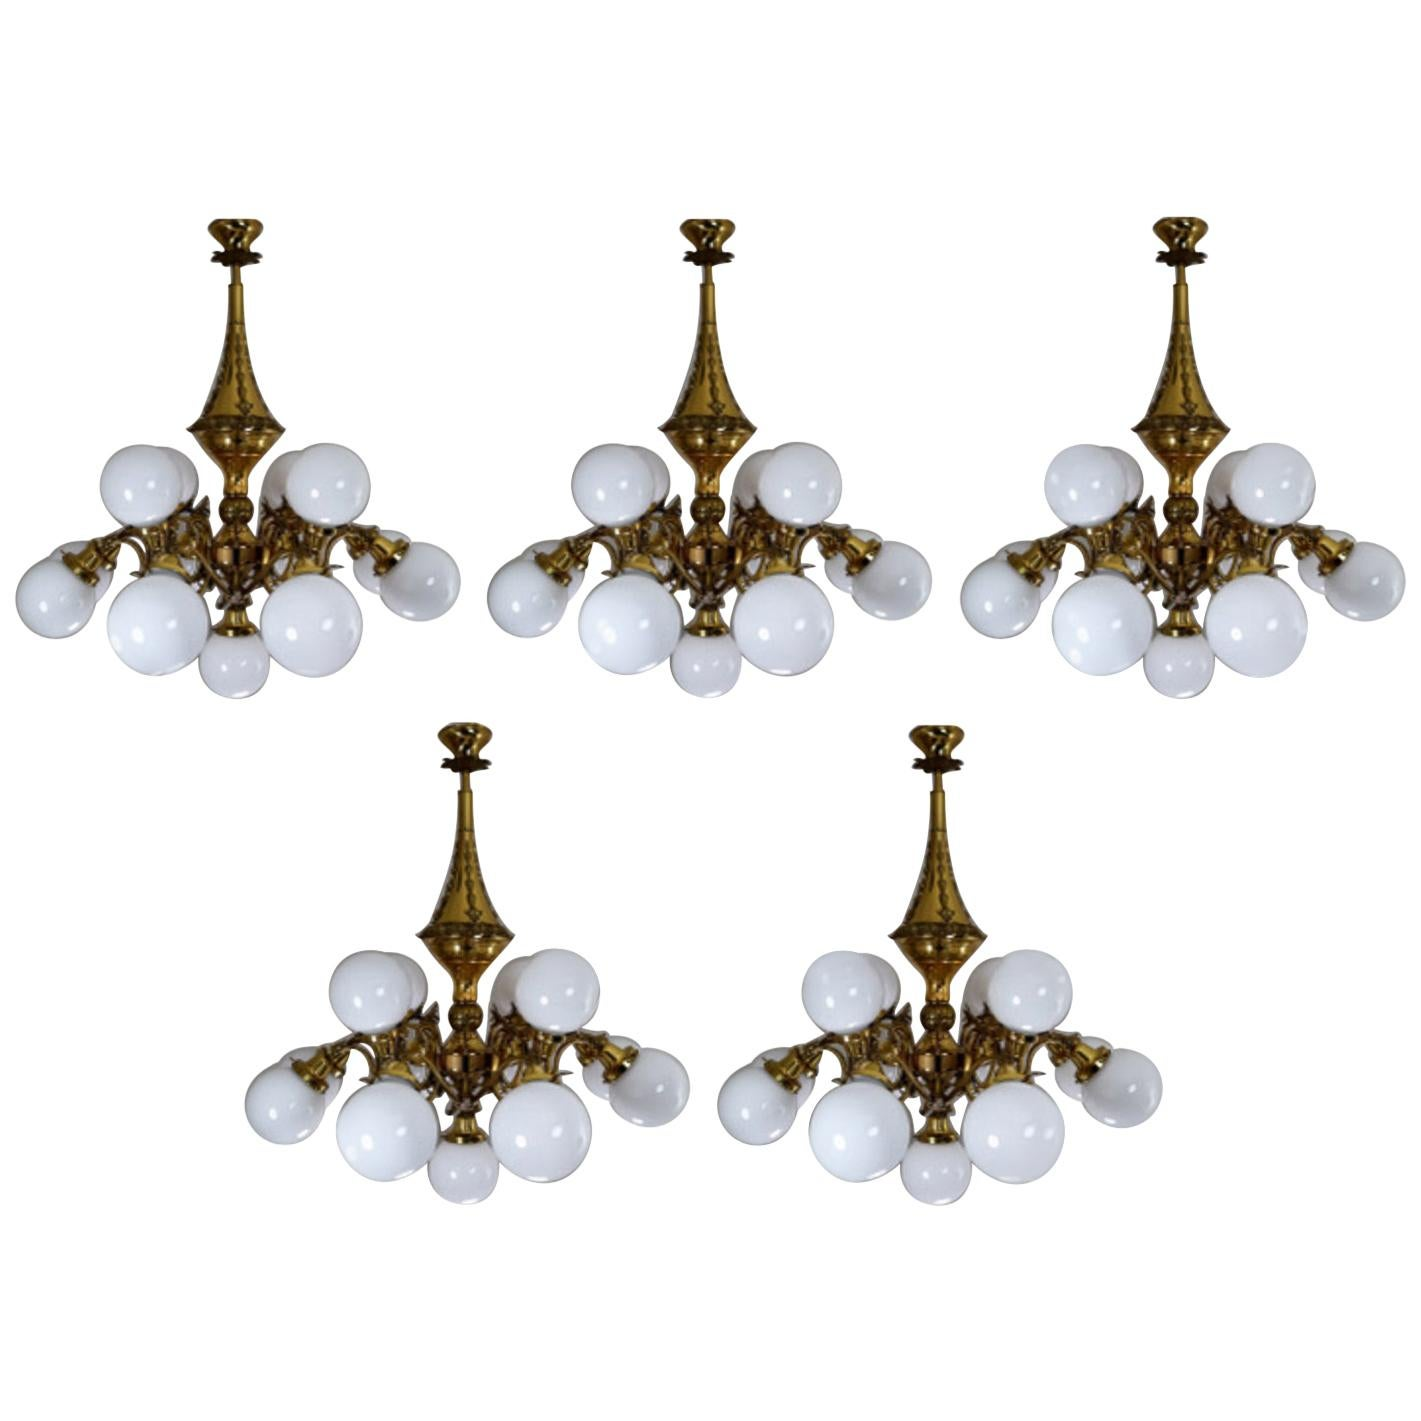 Monumental Brass Chandeliers with Opaline Glass Globes, National Gallery Praque